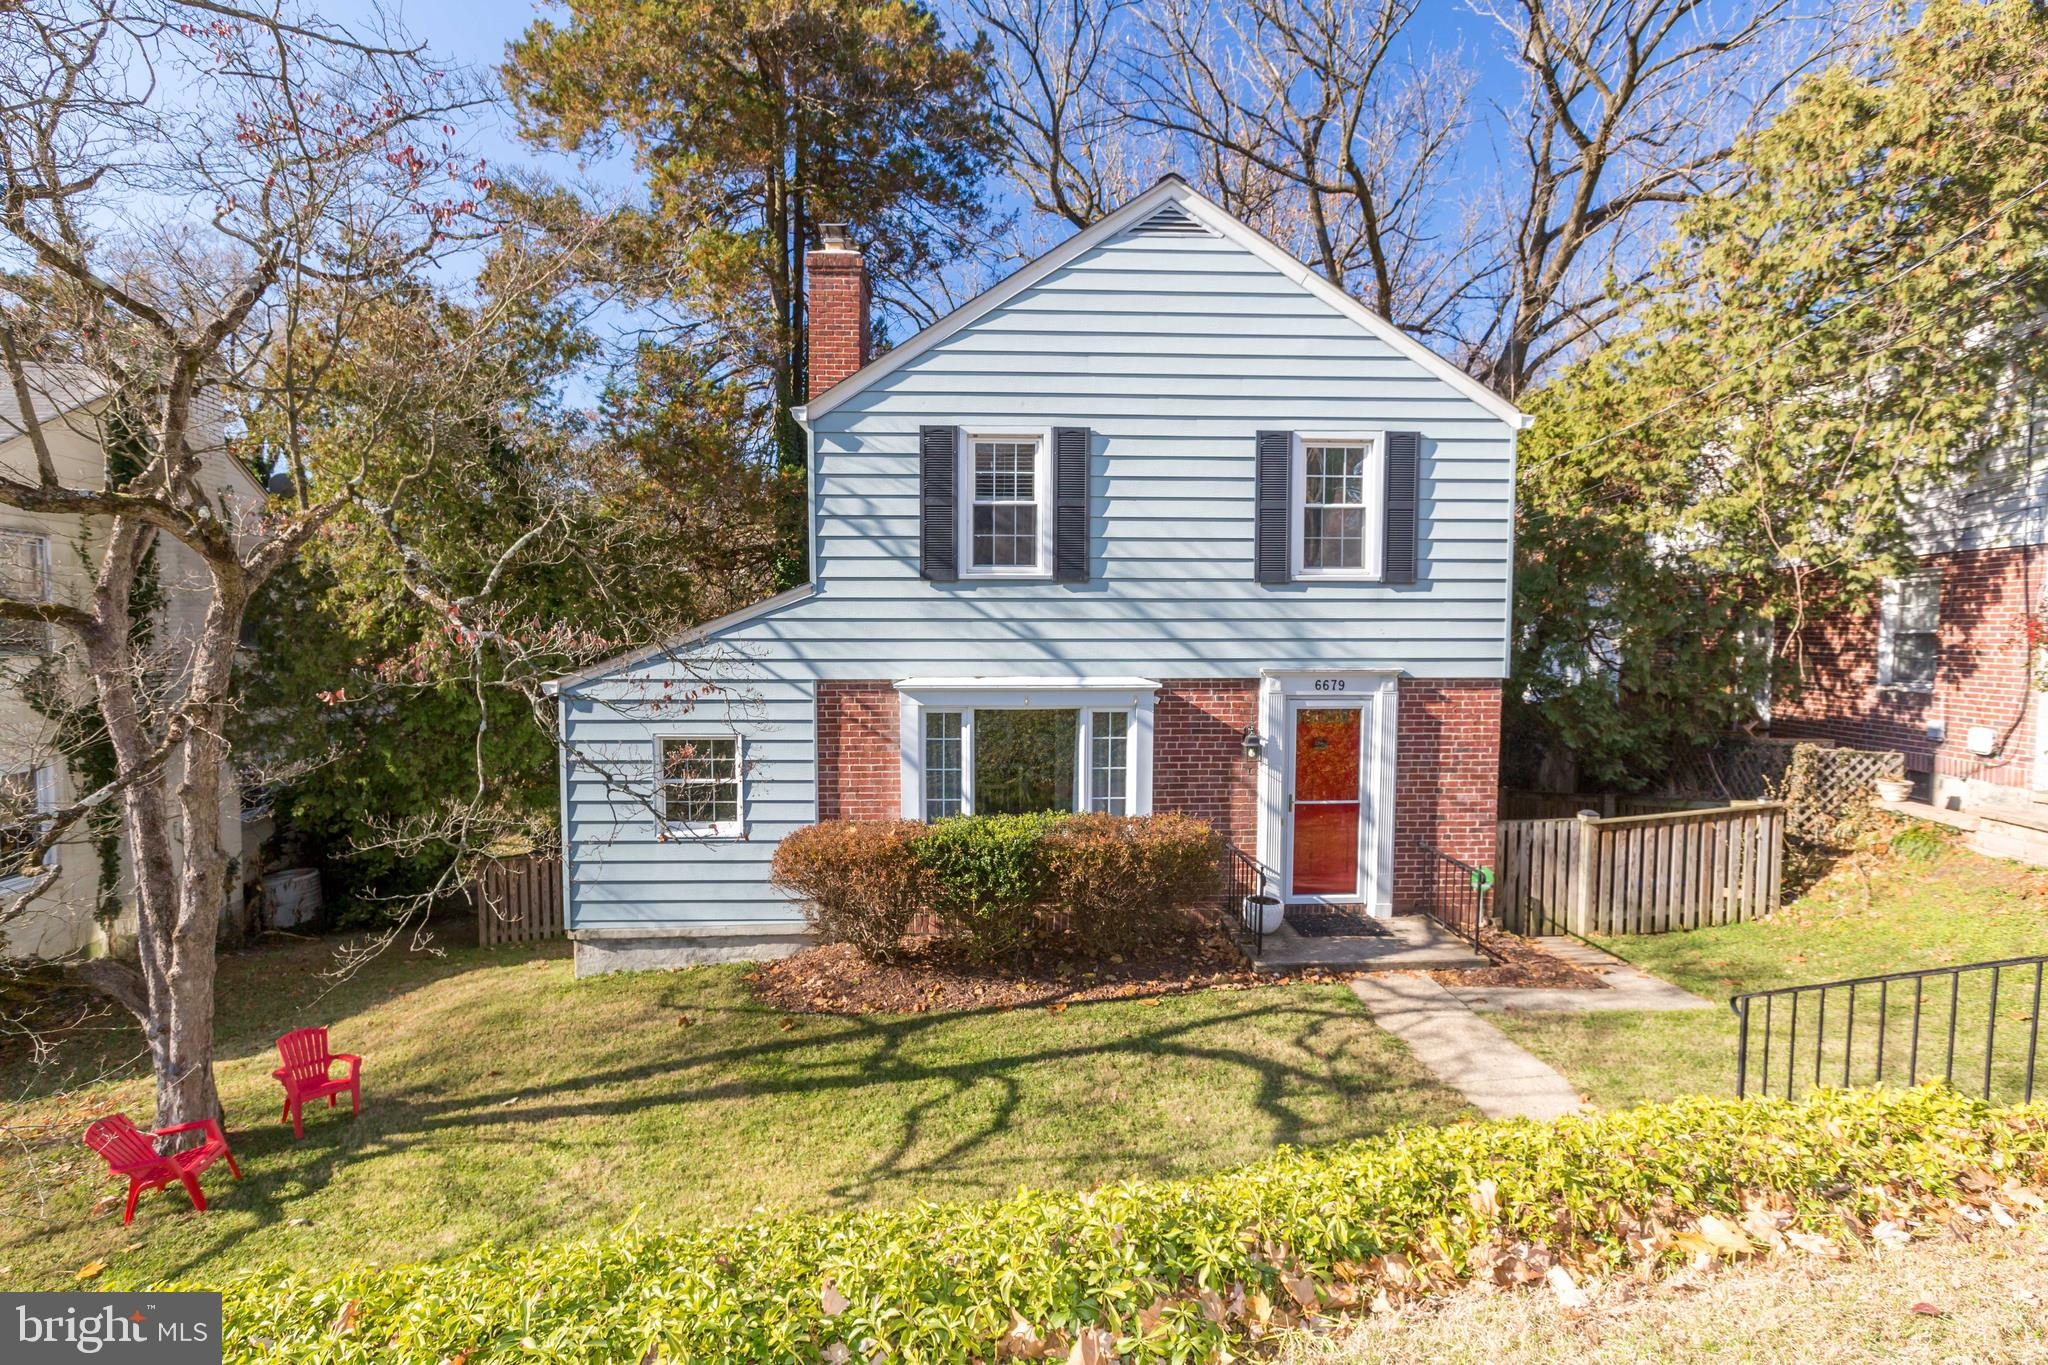 6679 LOCH HILL ROAD, BALTIMORE, MD 21239